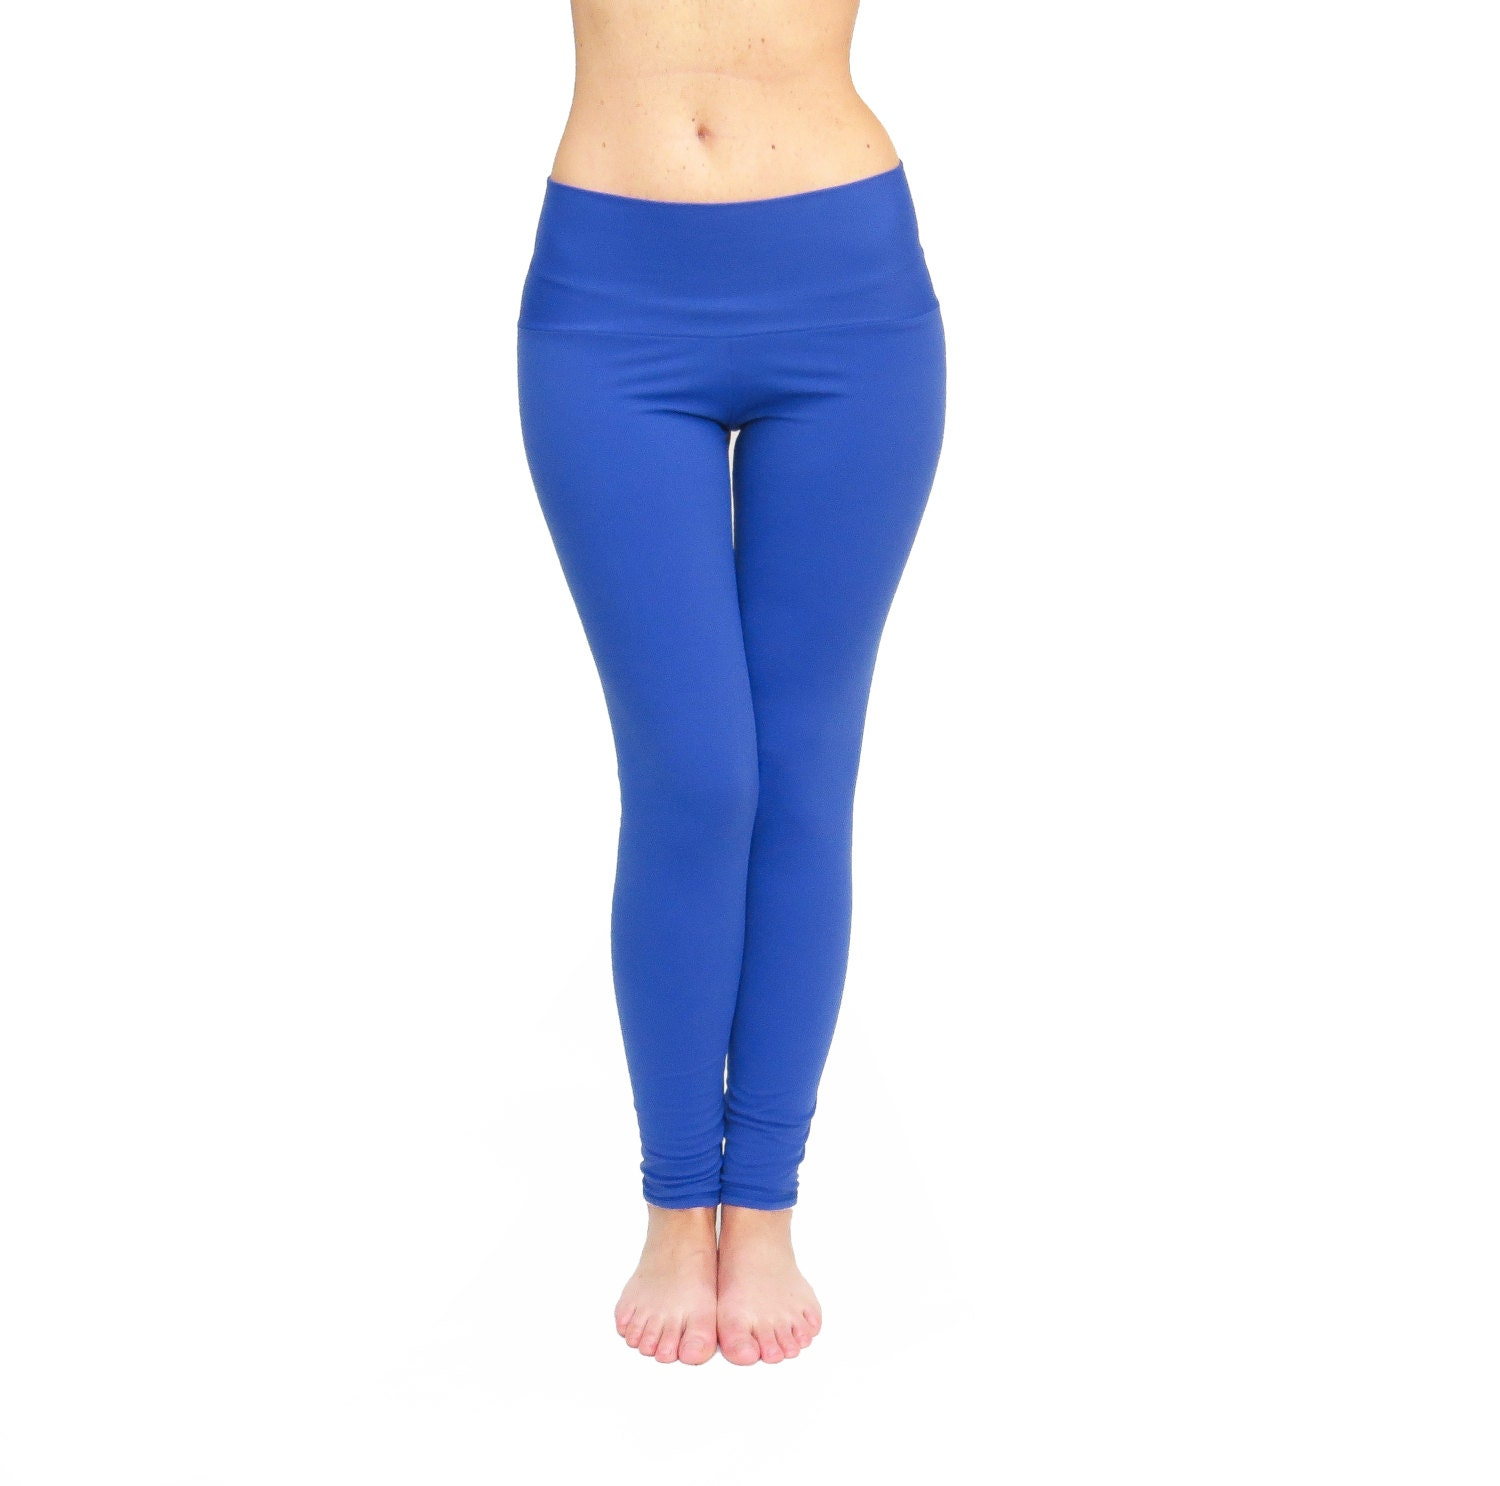 High Waist Leggings Blue Yoga Pants Activewear Gym Wear